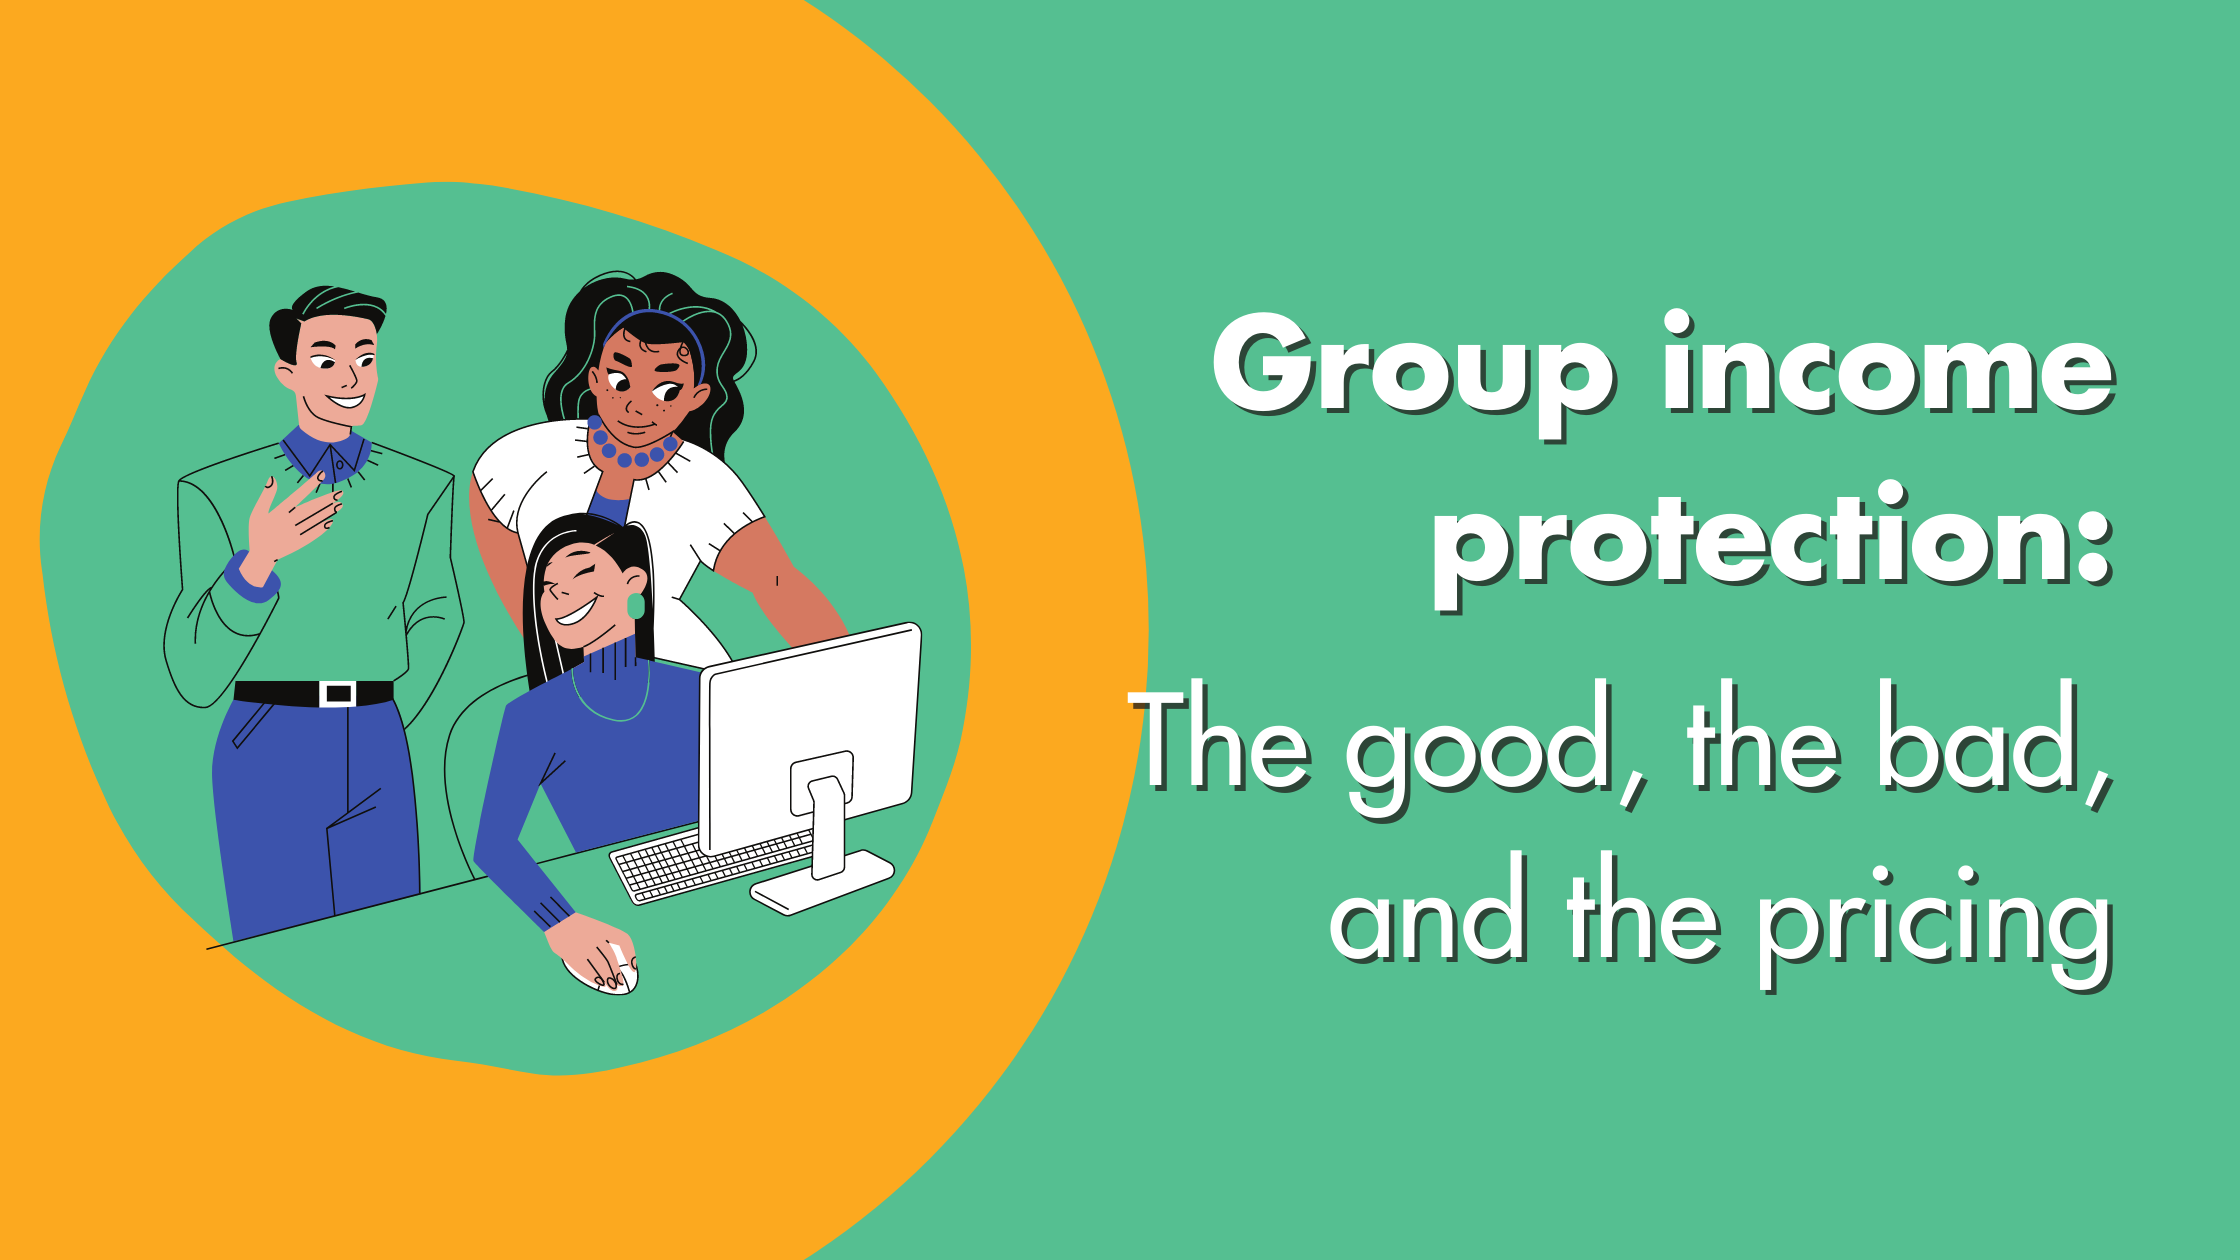 Group Income Protection The Good, The Bad And The Pricing